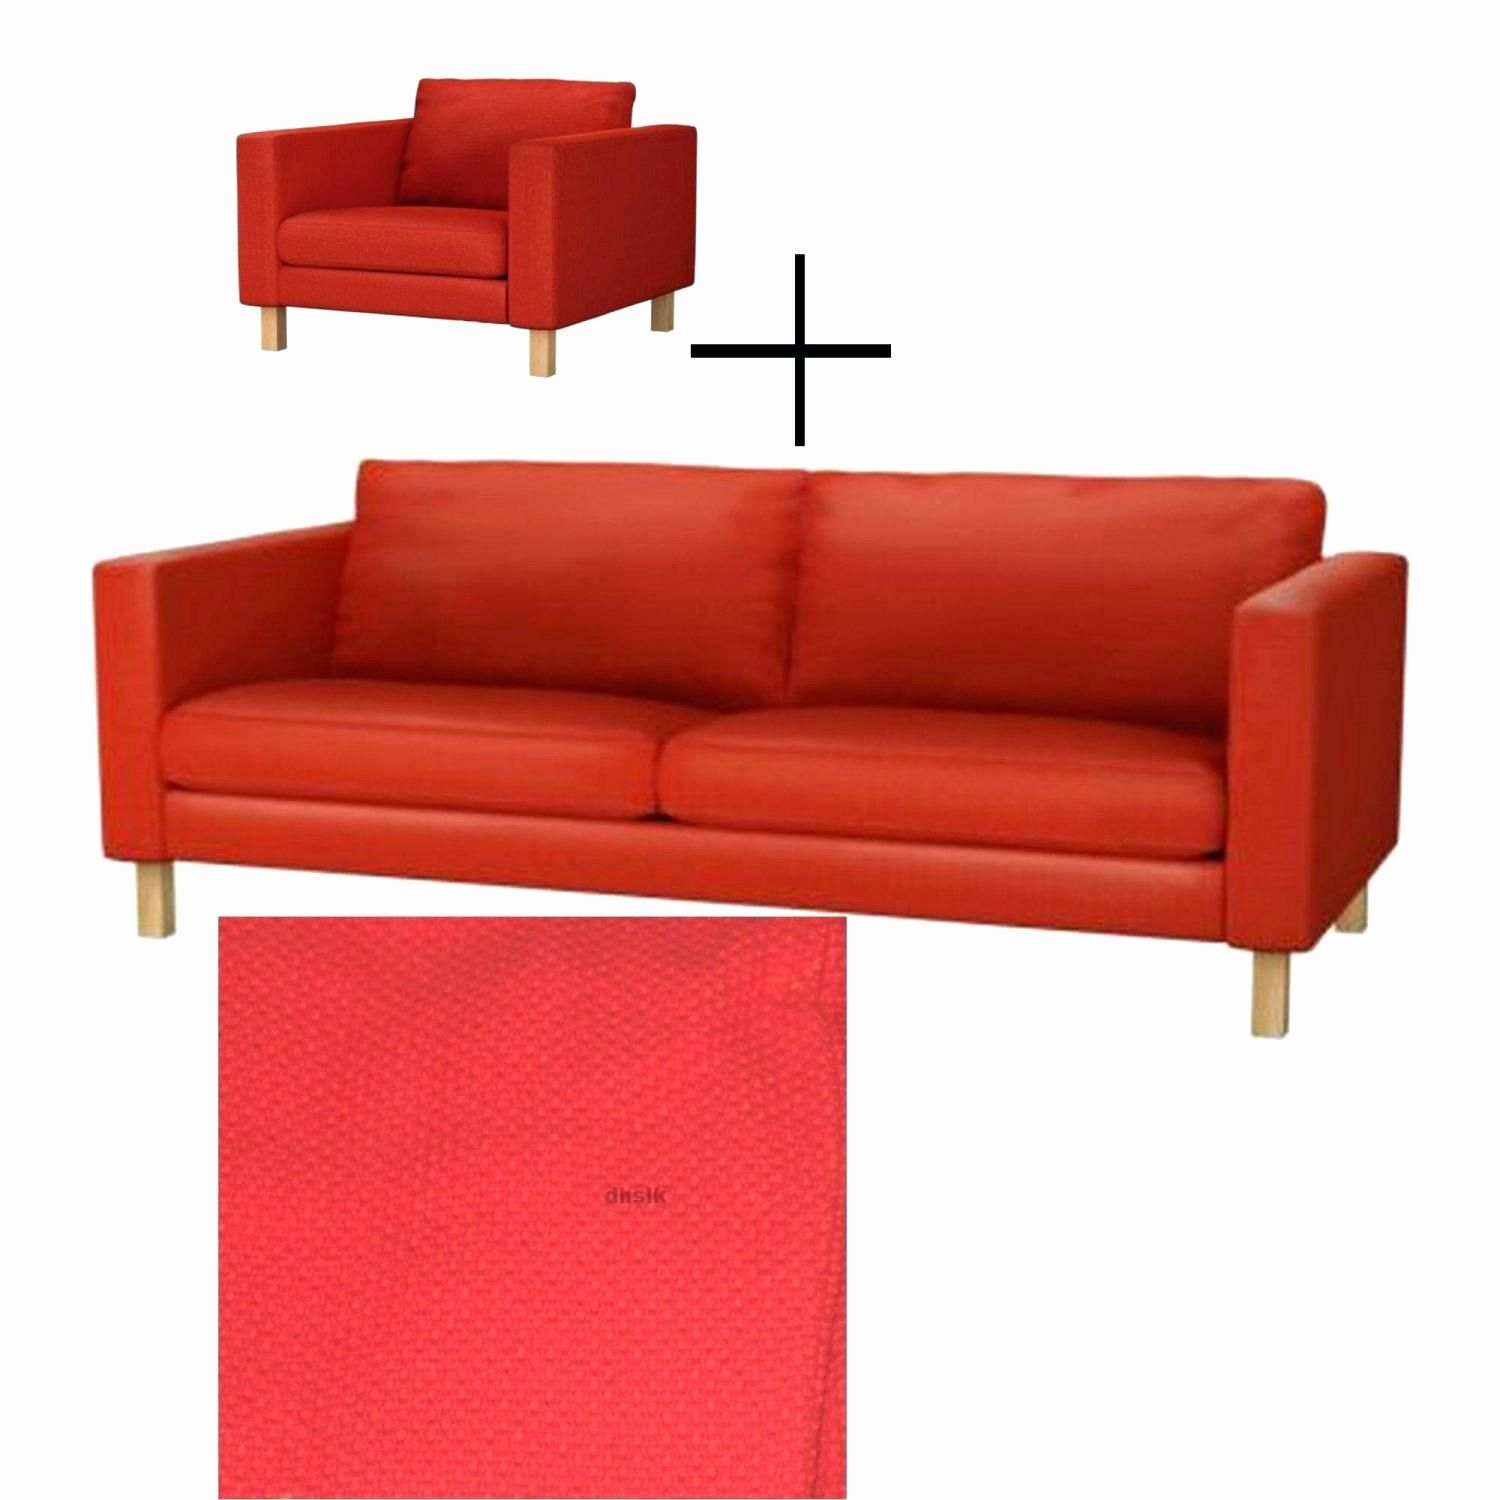 Luxury Red sofa Covers Art Red sofa Covers Unique Ikea ...